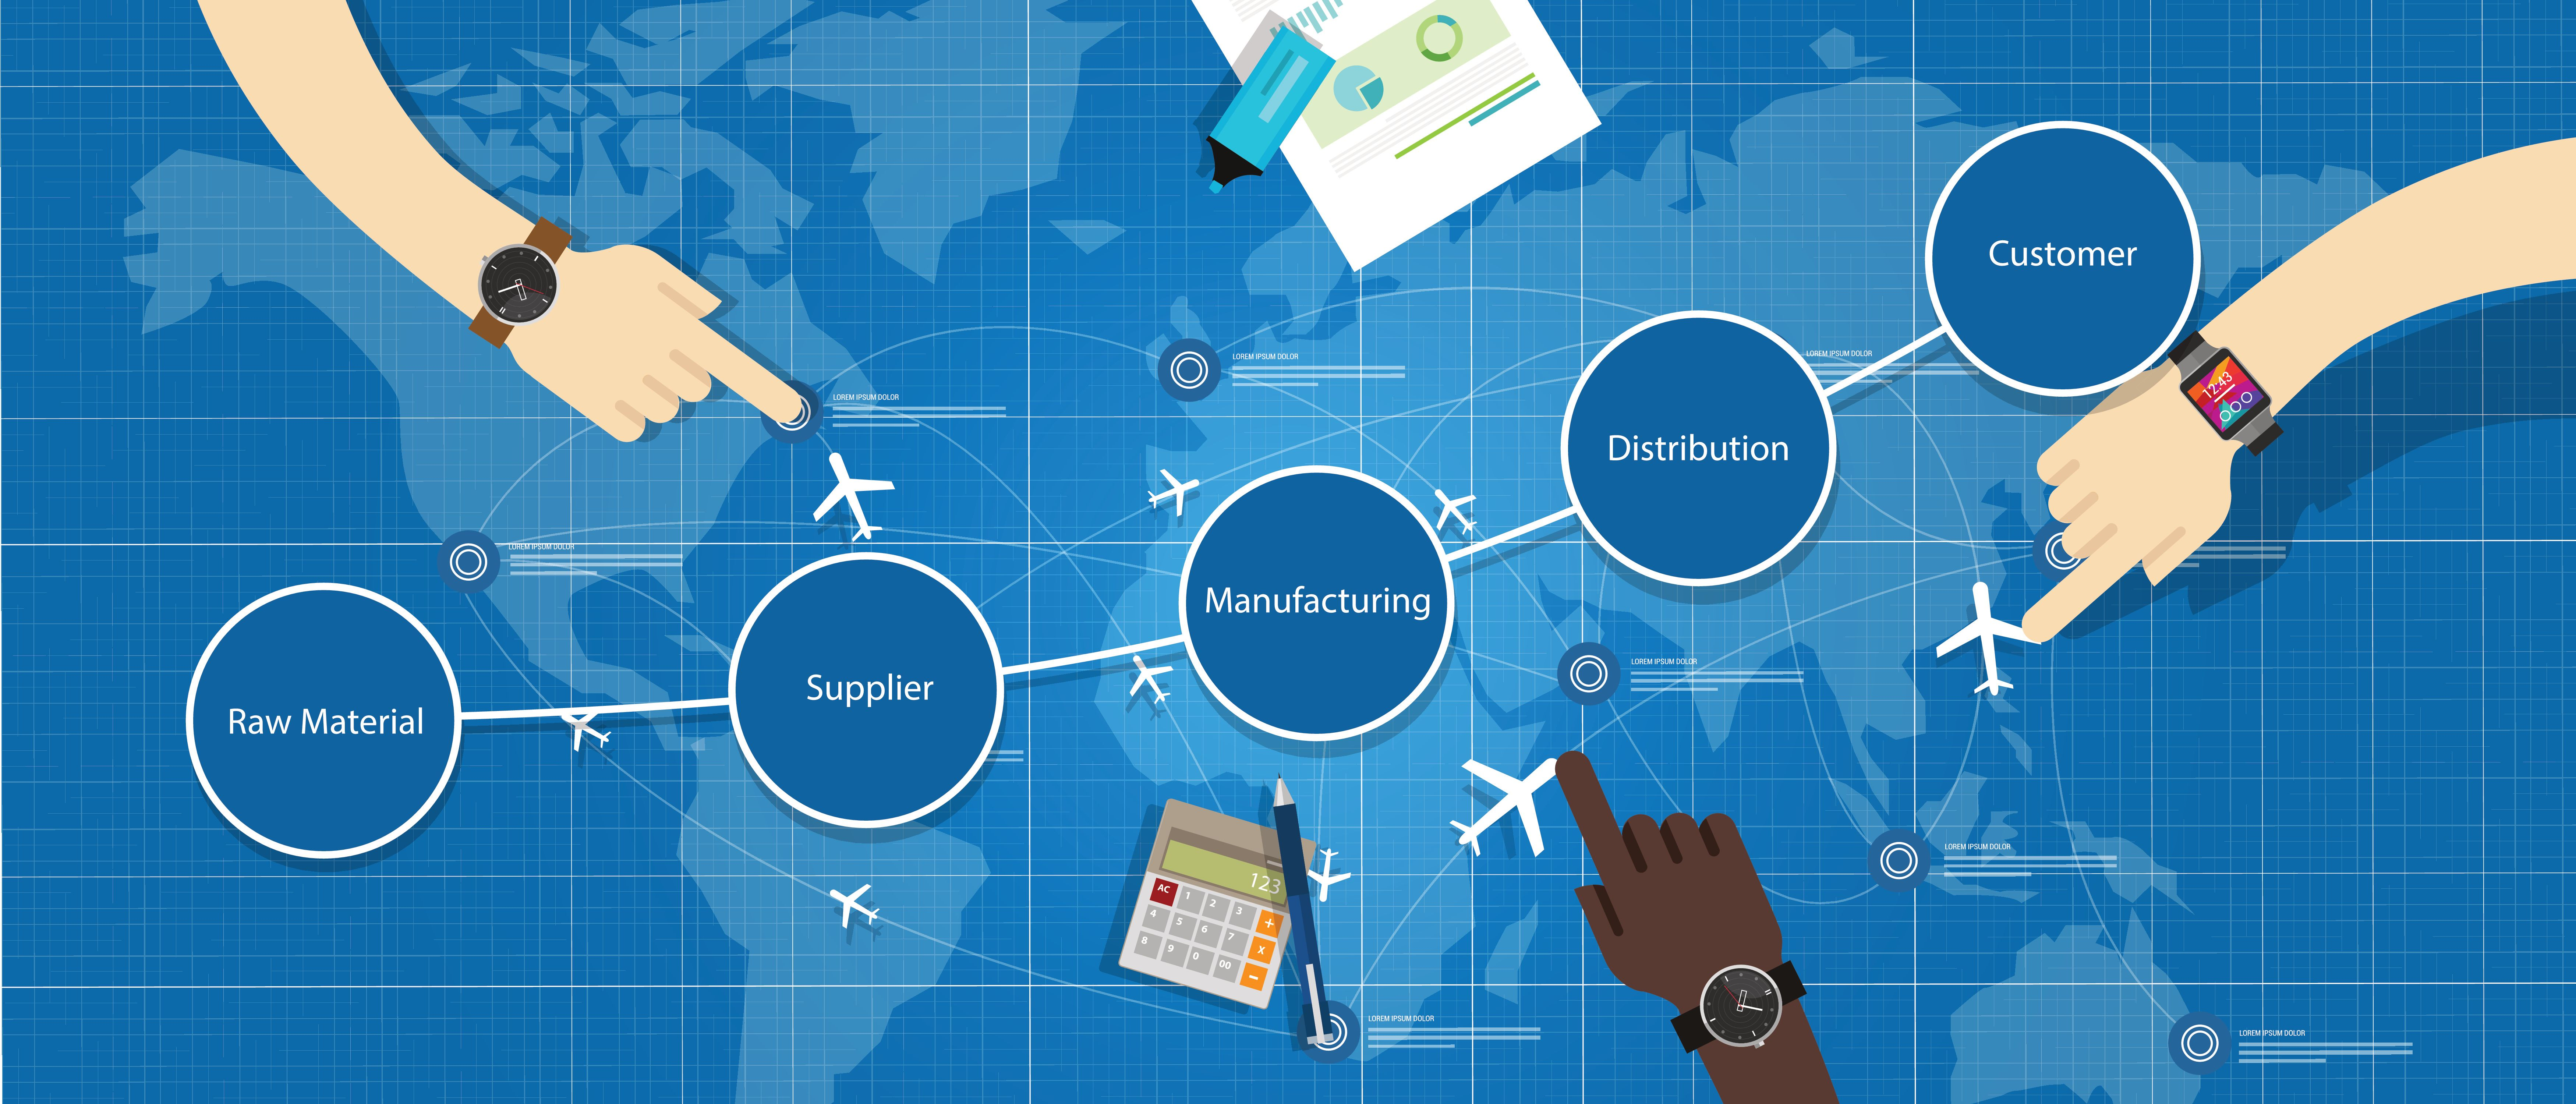 Creating Trust Throughout the Supply Chain Using Demand